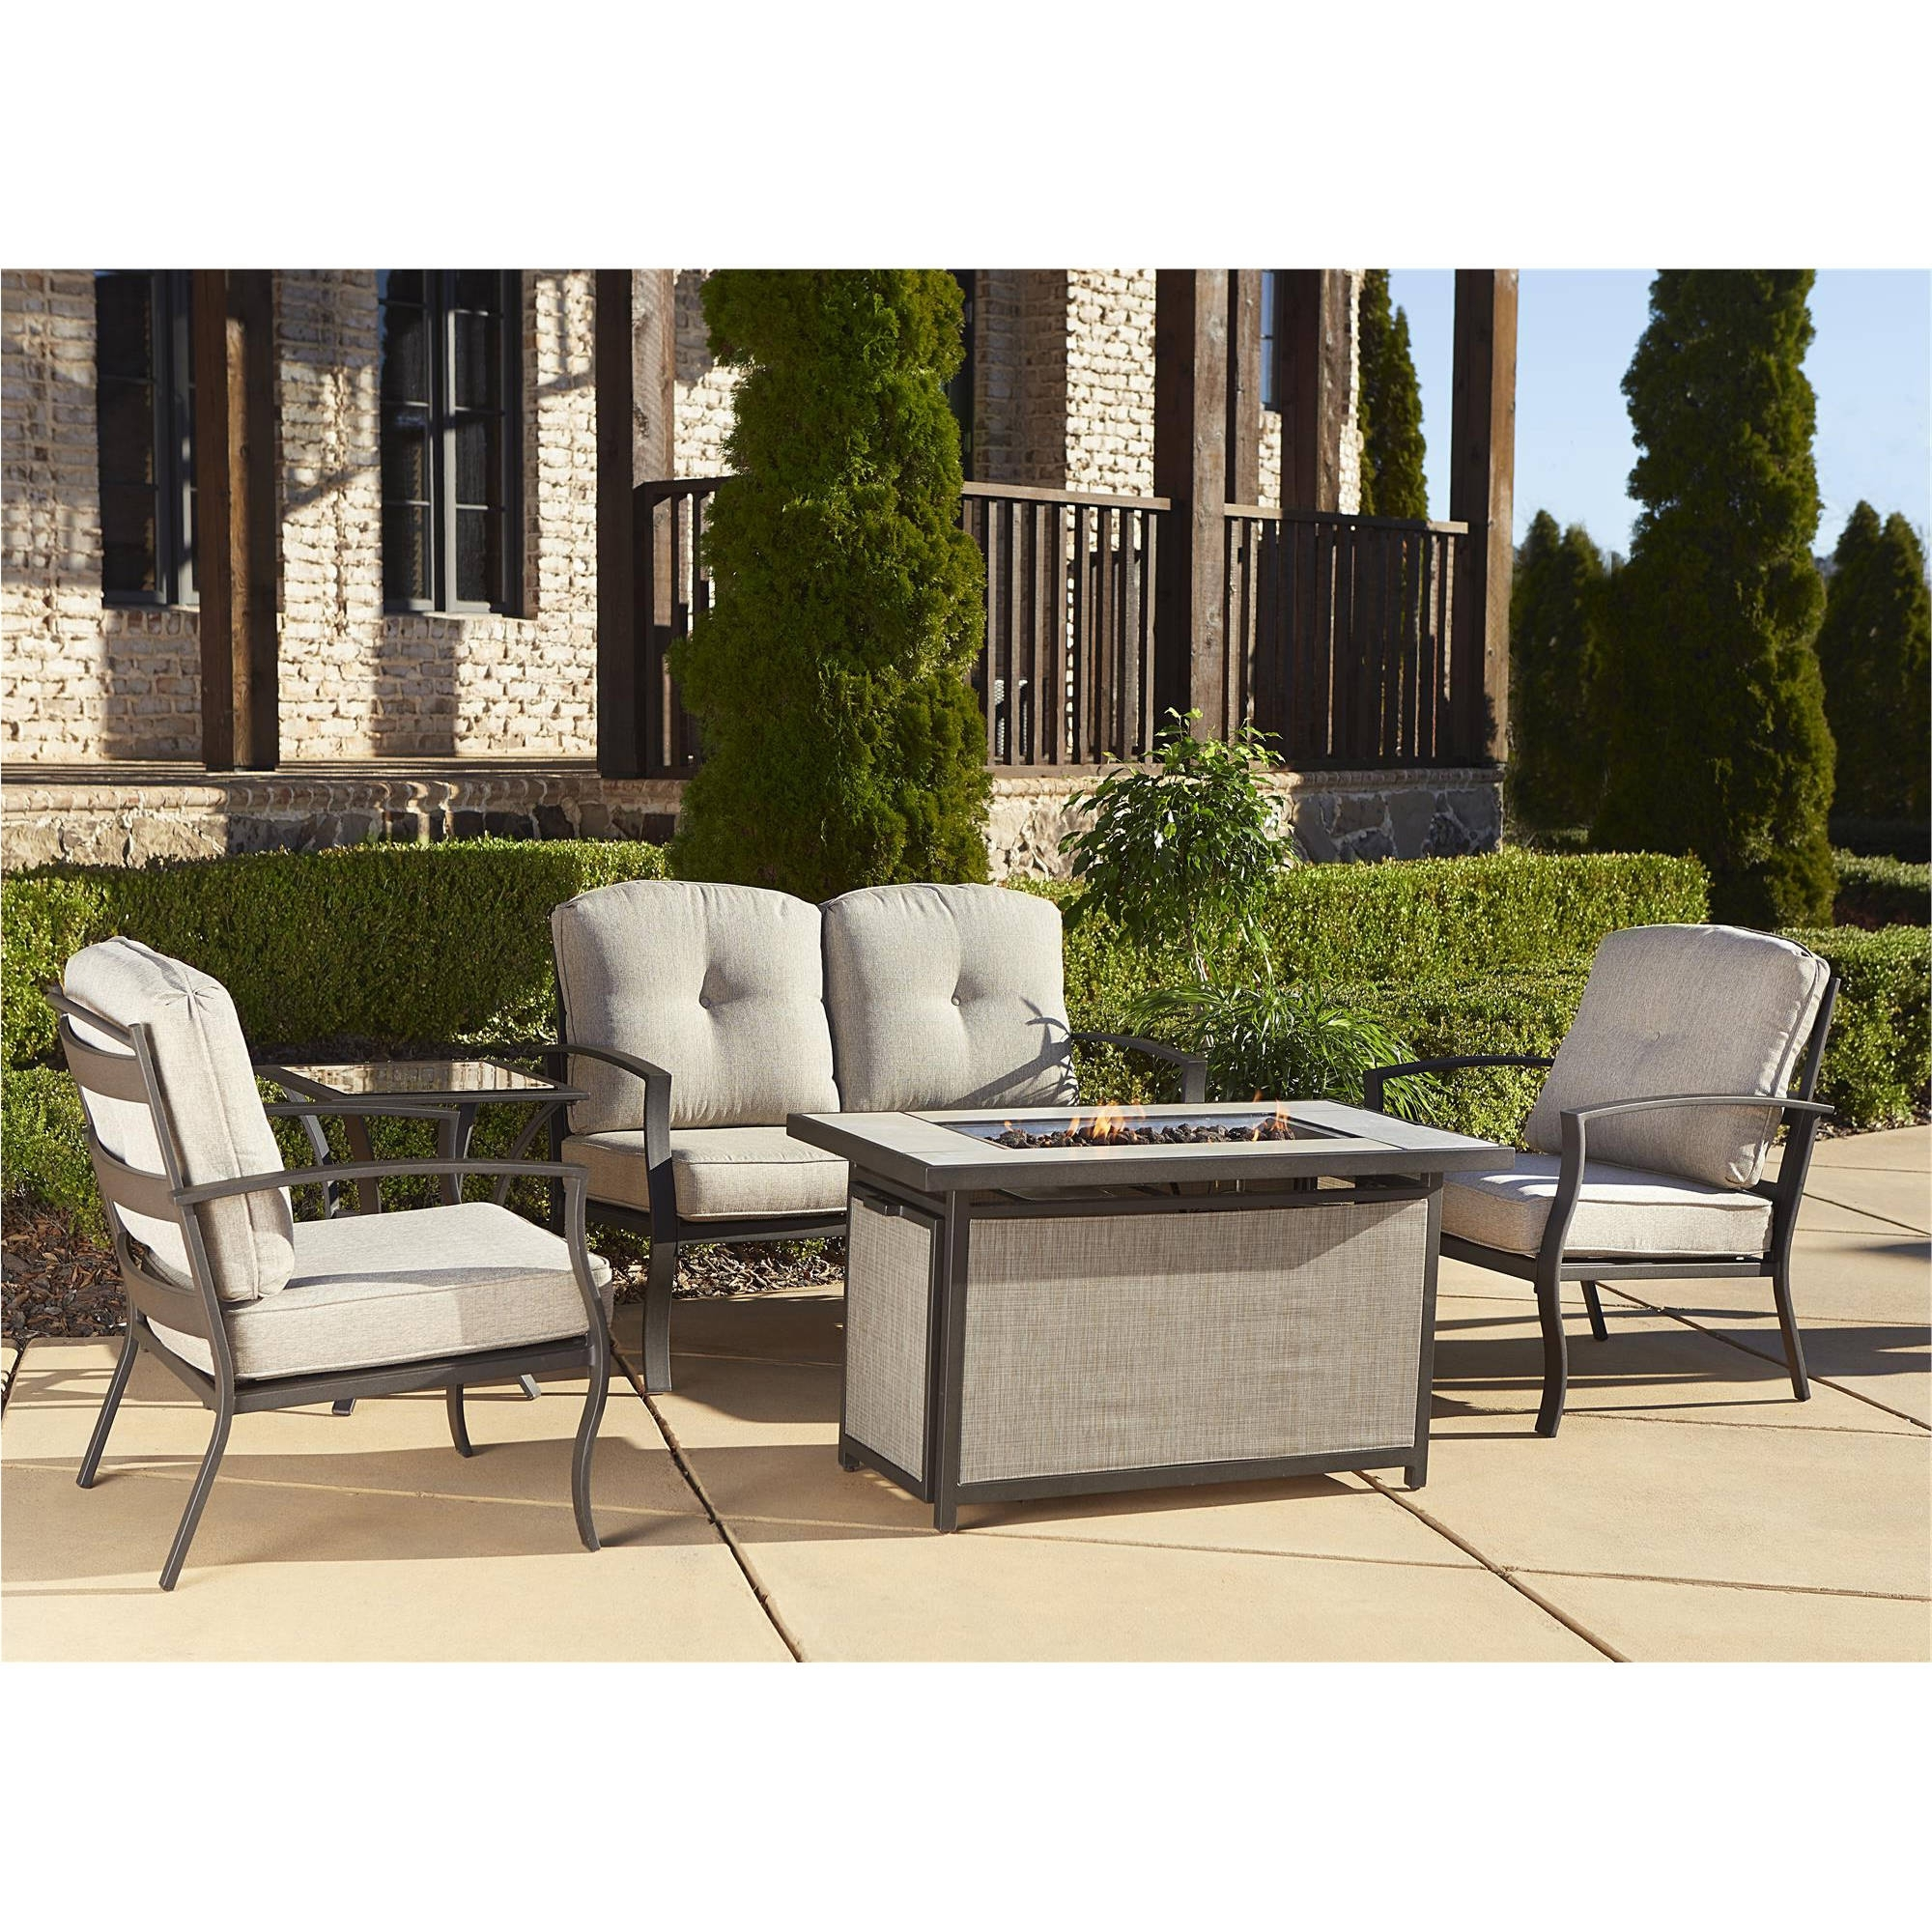 Best Of Patio Furniture Sets With Gas Fire Pit Conversation Sets Throughout Most Recently Released Patio Conversation Sets With Propane Fire Pit (View 9 of 20)